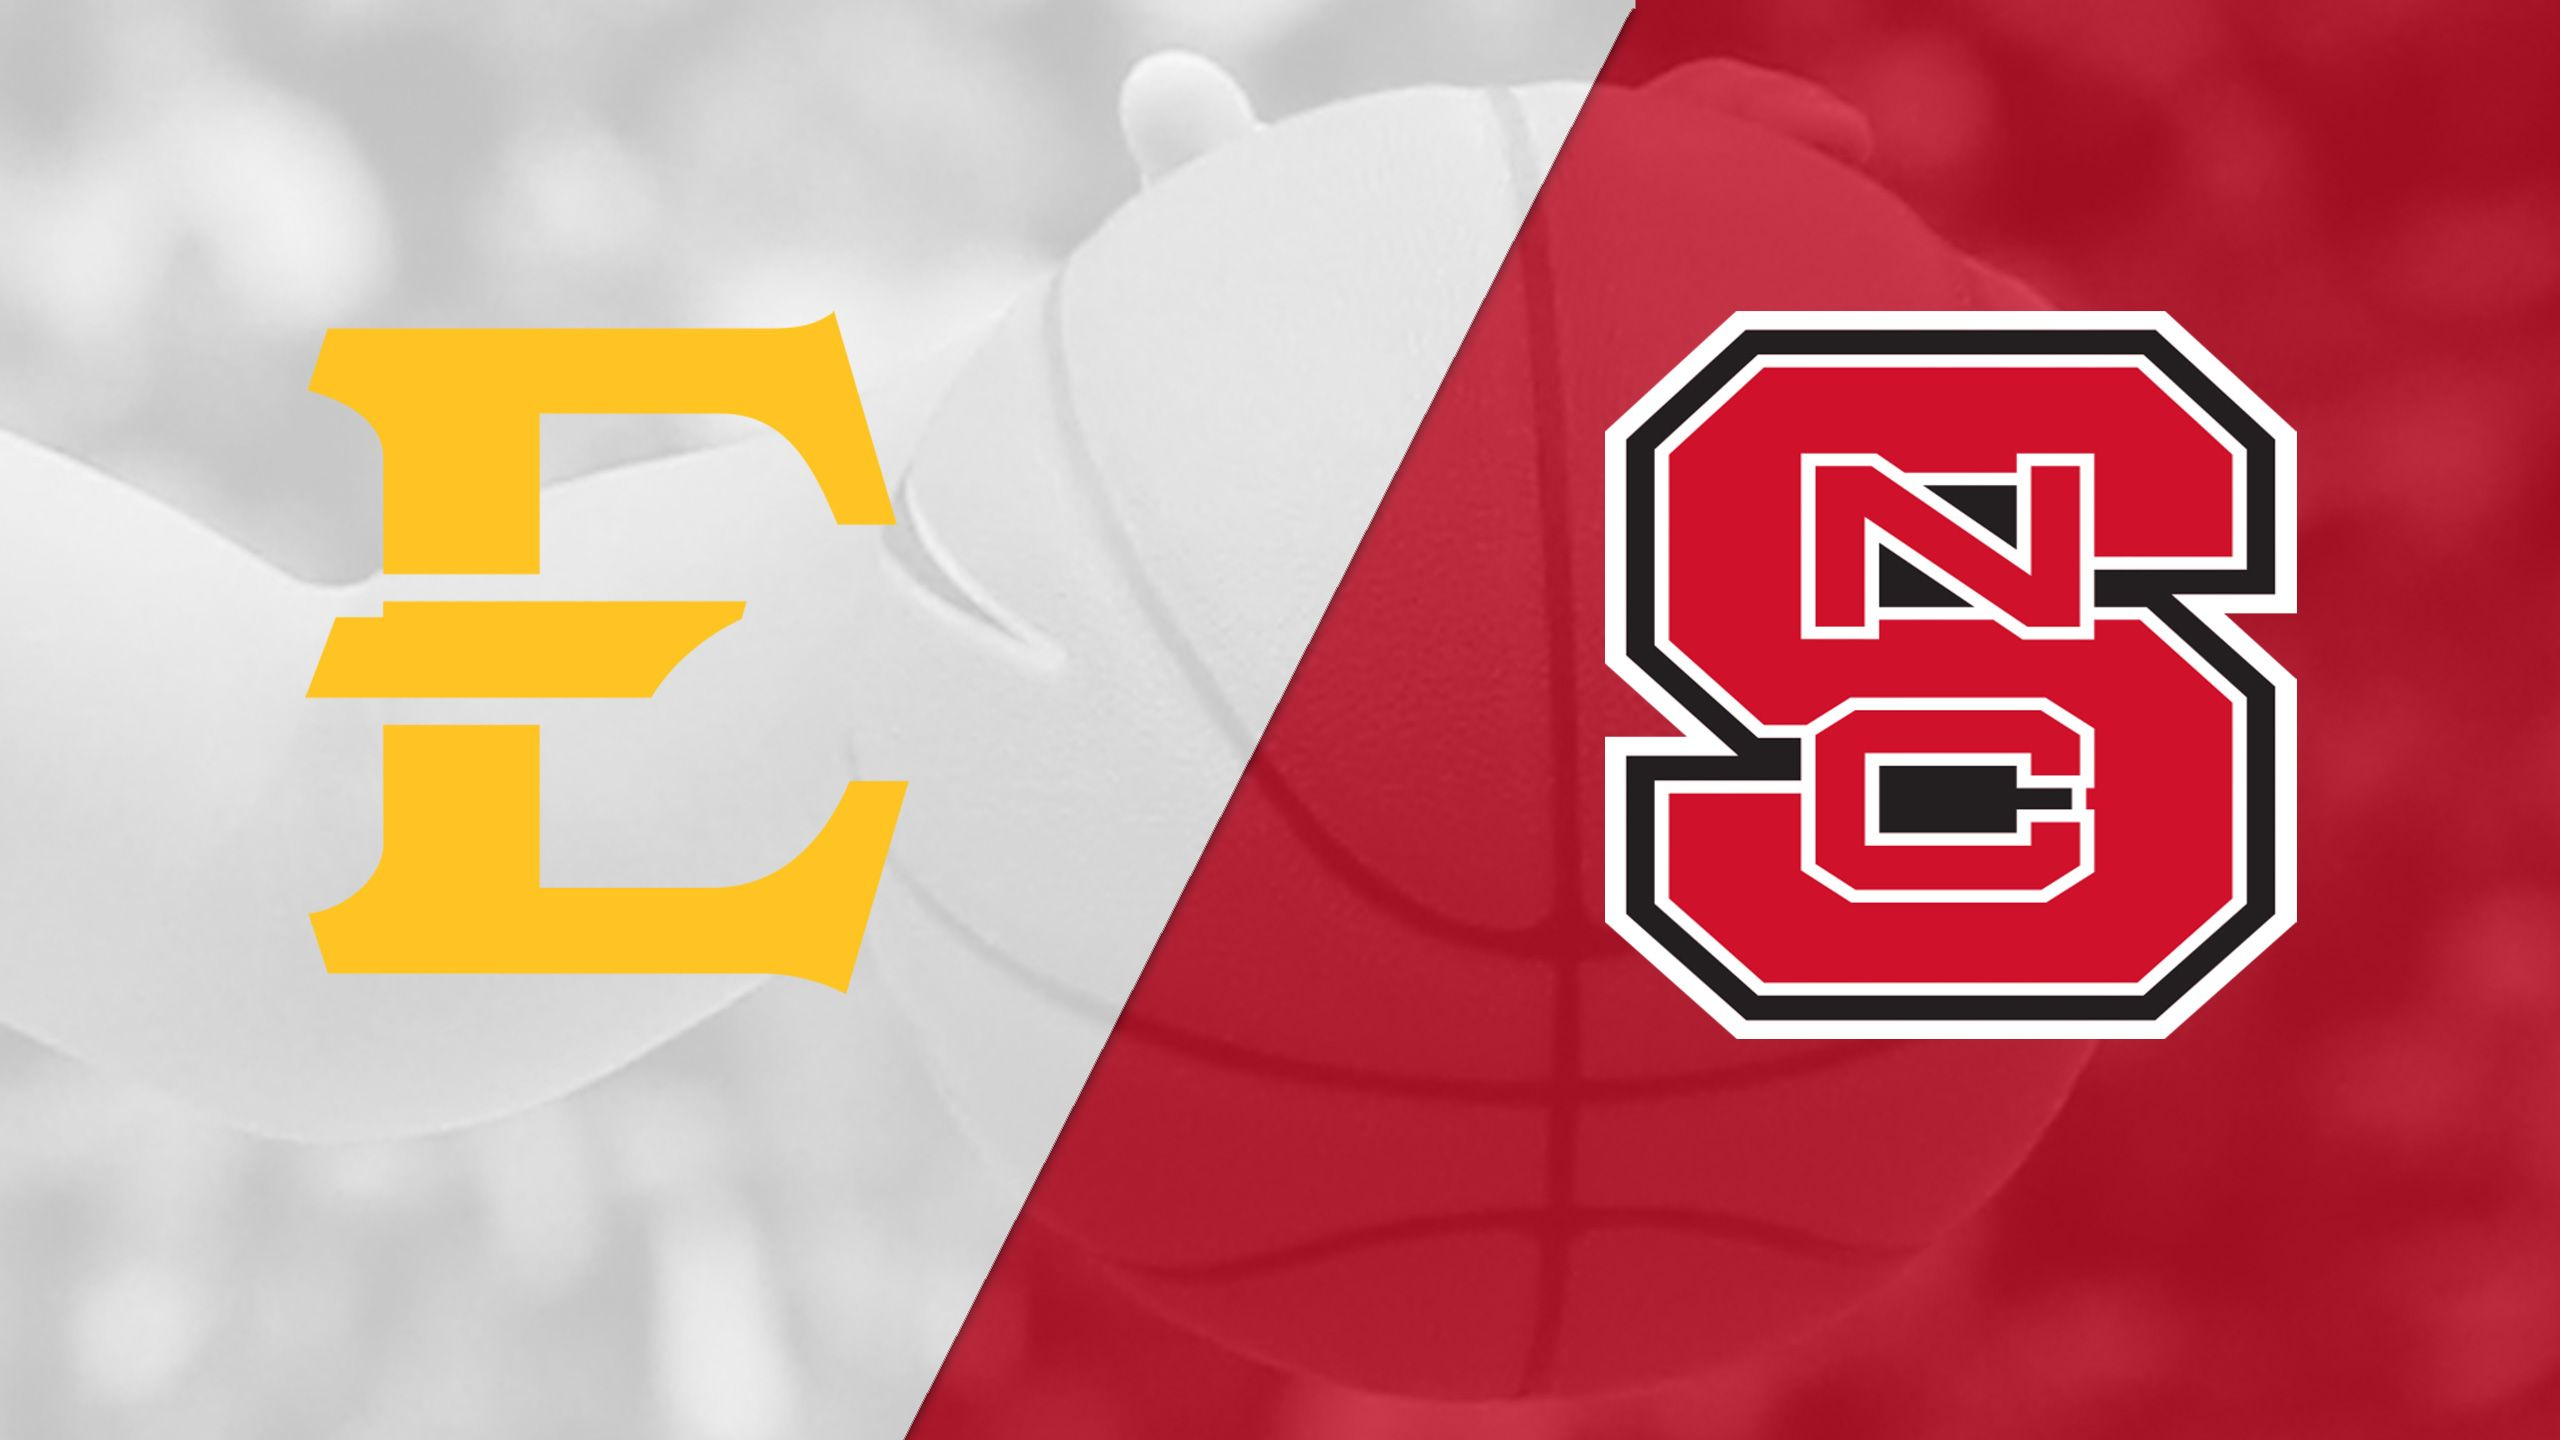 East Tennessee State vs. NC State (W Basketball)